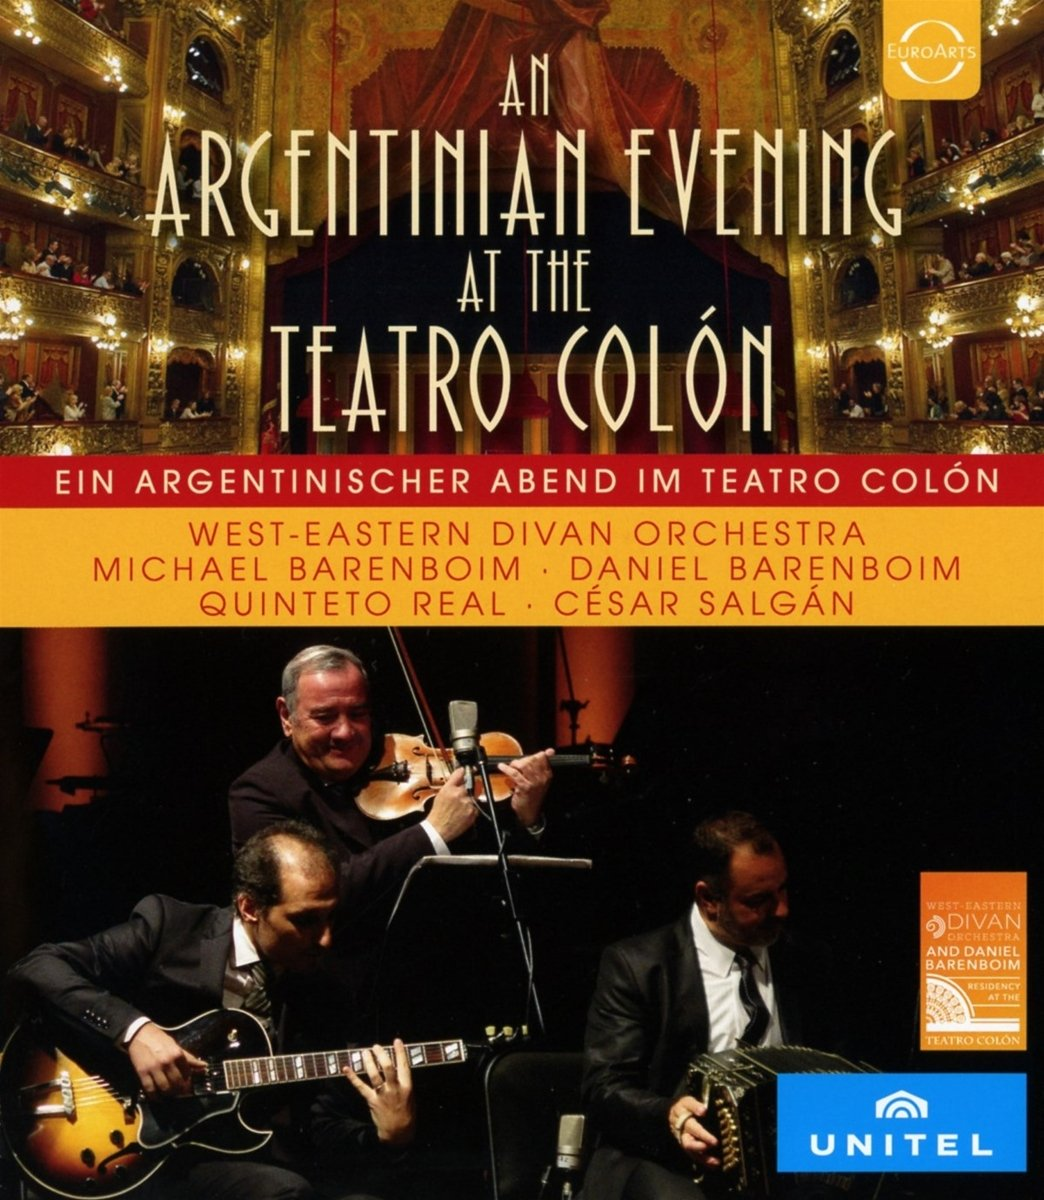 Blu-ray : WEST-EASTERN DIVAN ORCHESTRA, DANIEL BARENBOIM, MICHAEL BARENBOIM - West-eastern Divan Orchestra At The Teatro Colon - A Tango Evening (Blu-ray)